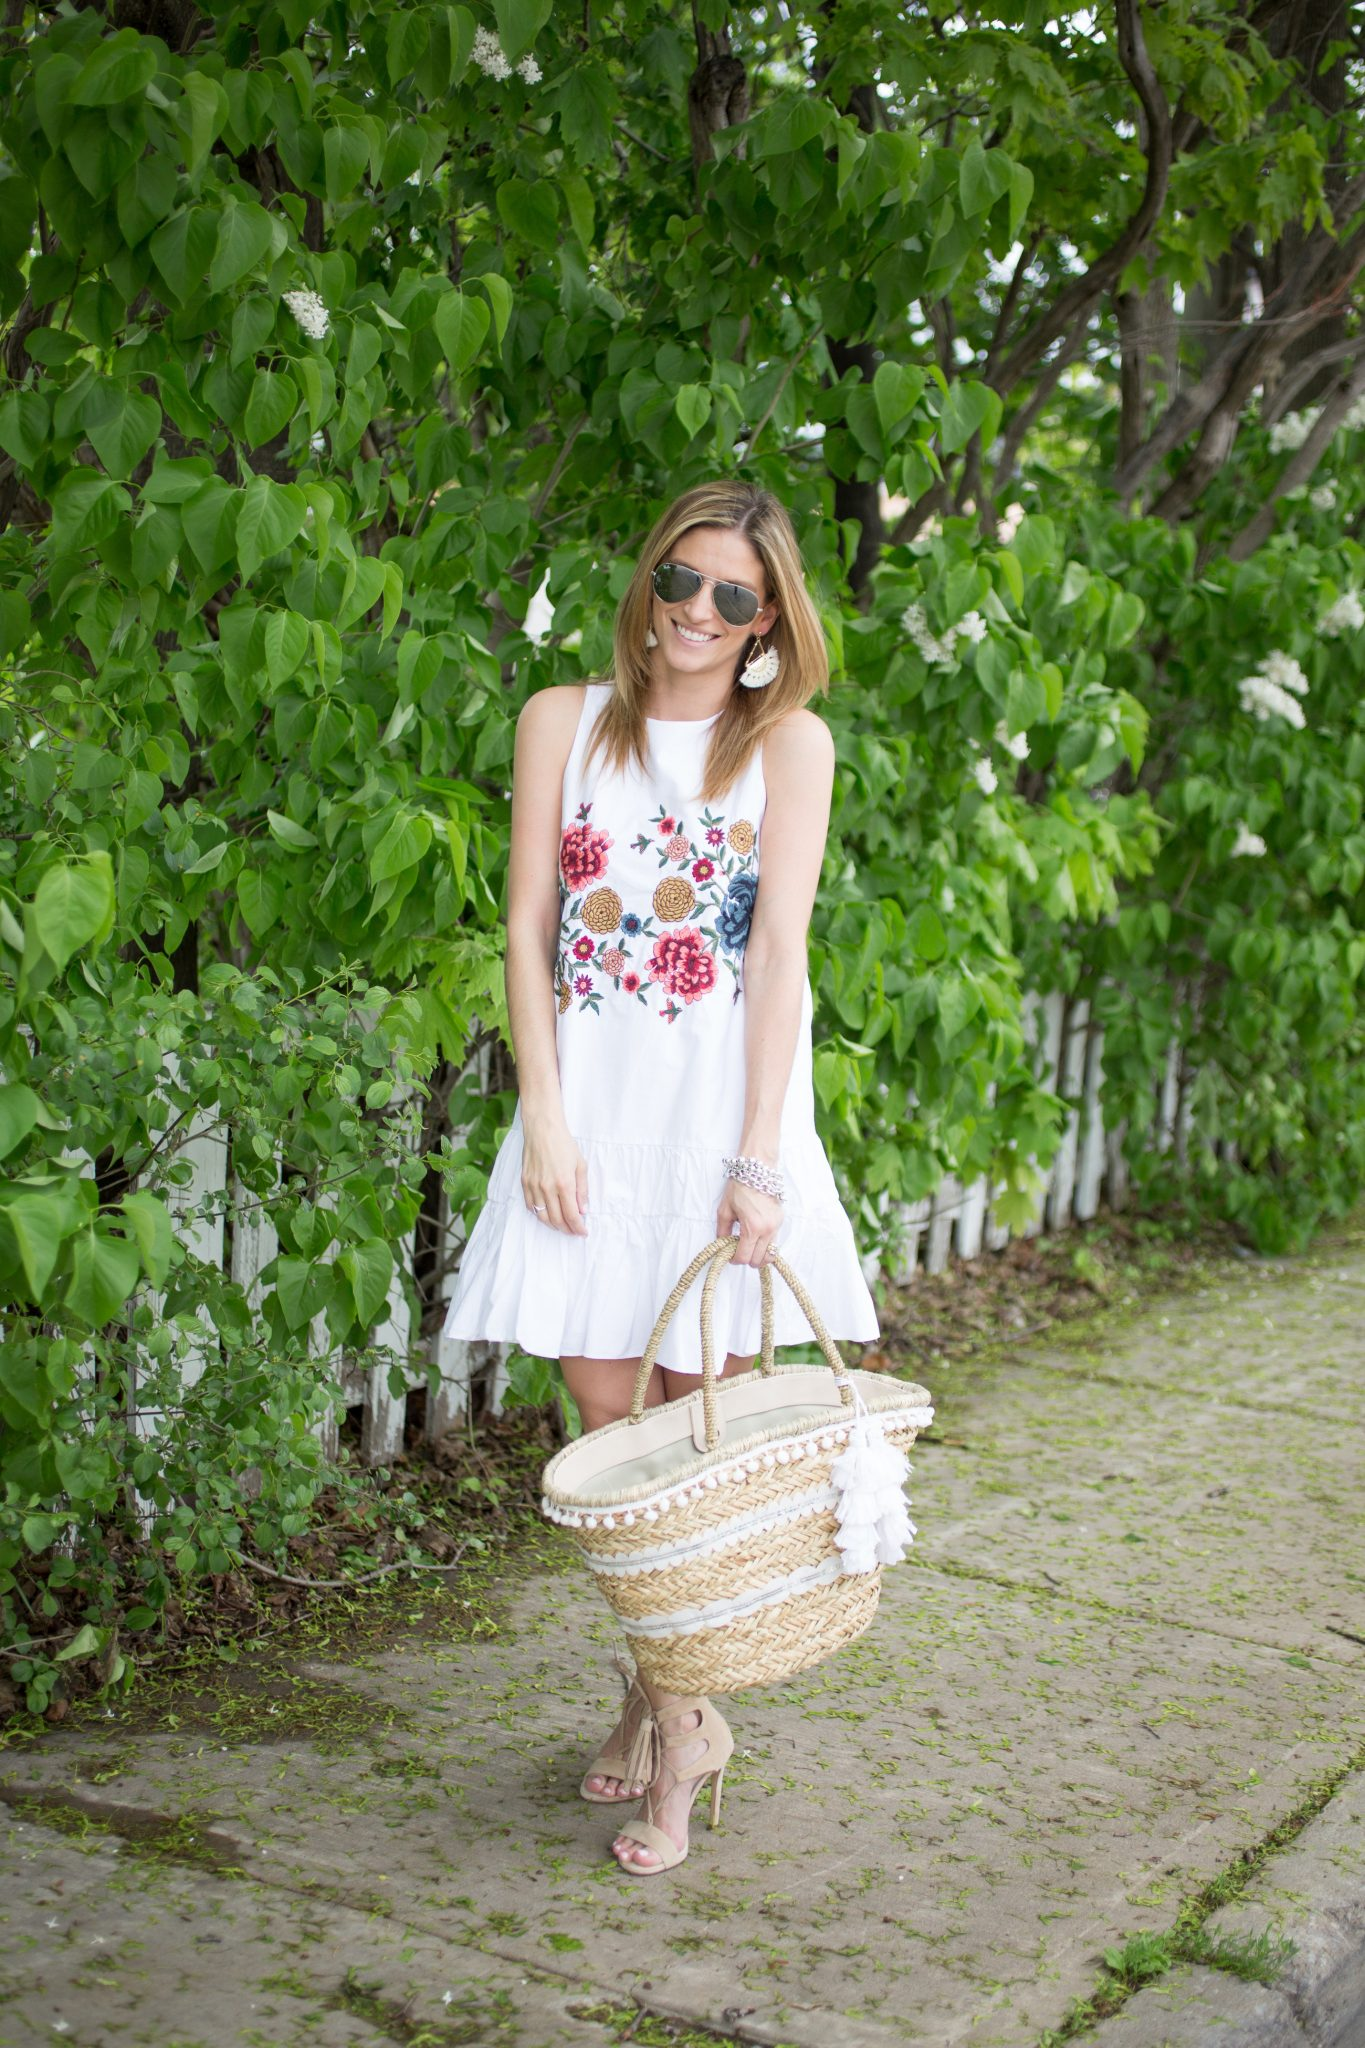 Zara white embroidered dress, nude heels, straw tassel bag, silver Ray-Ban aviators